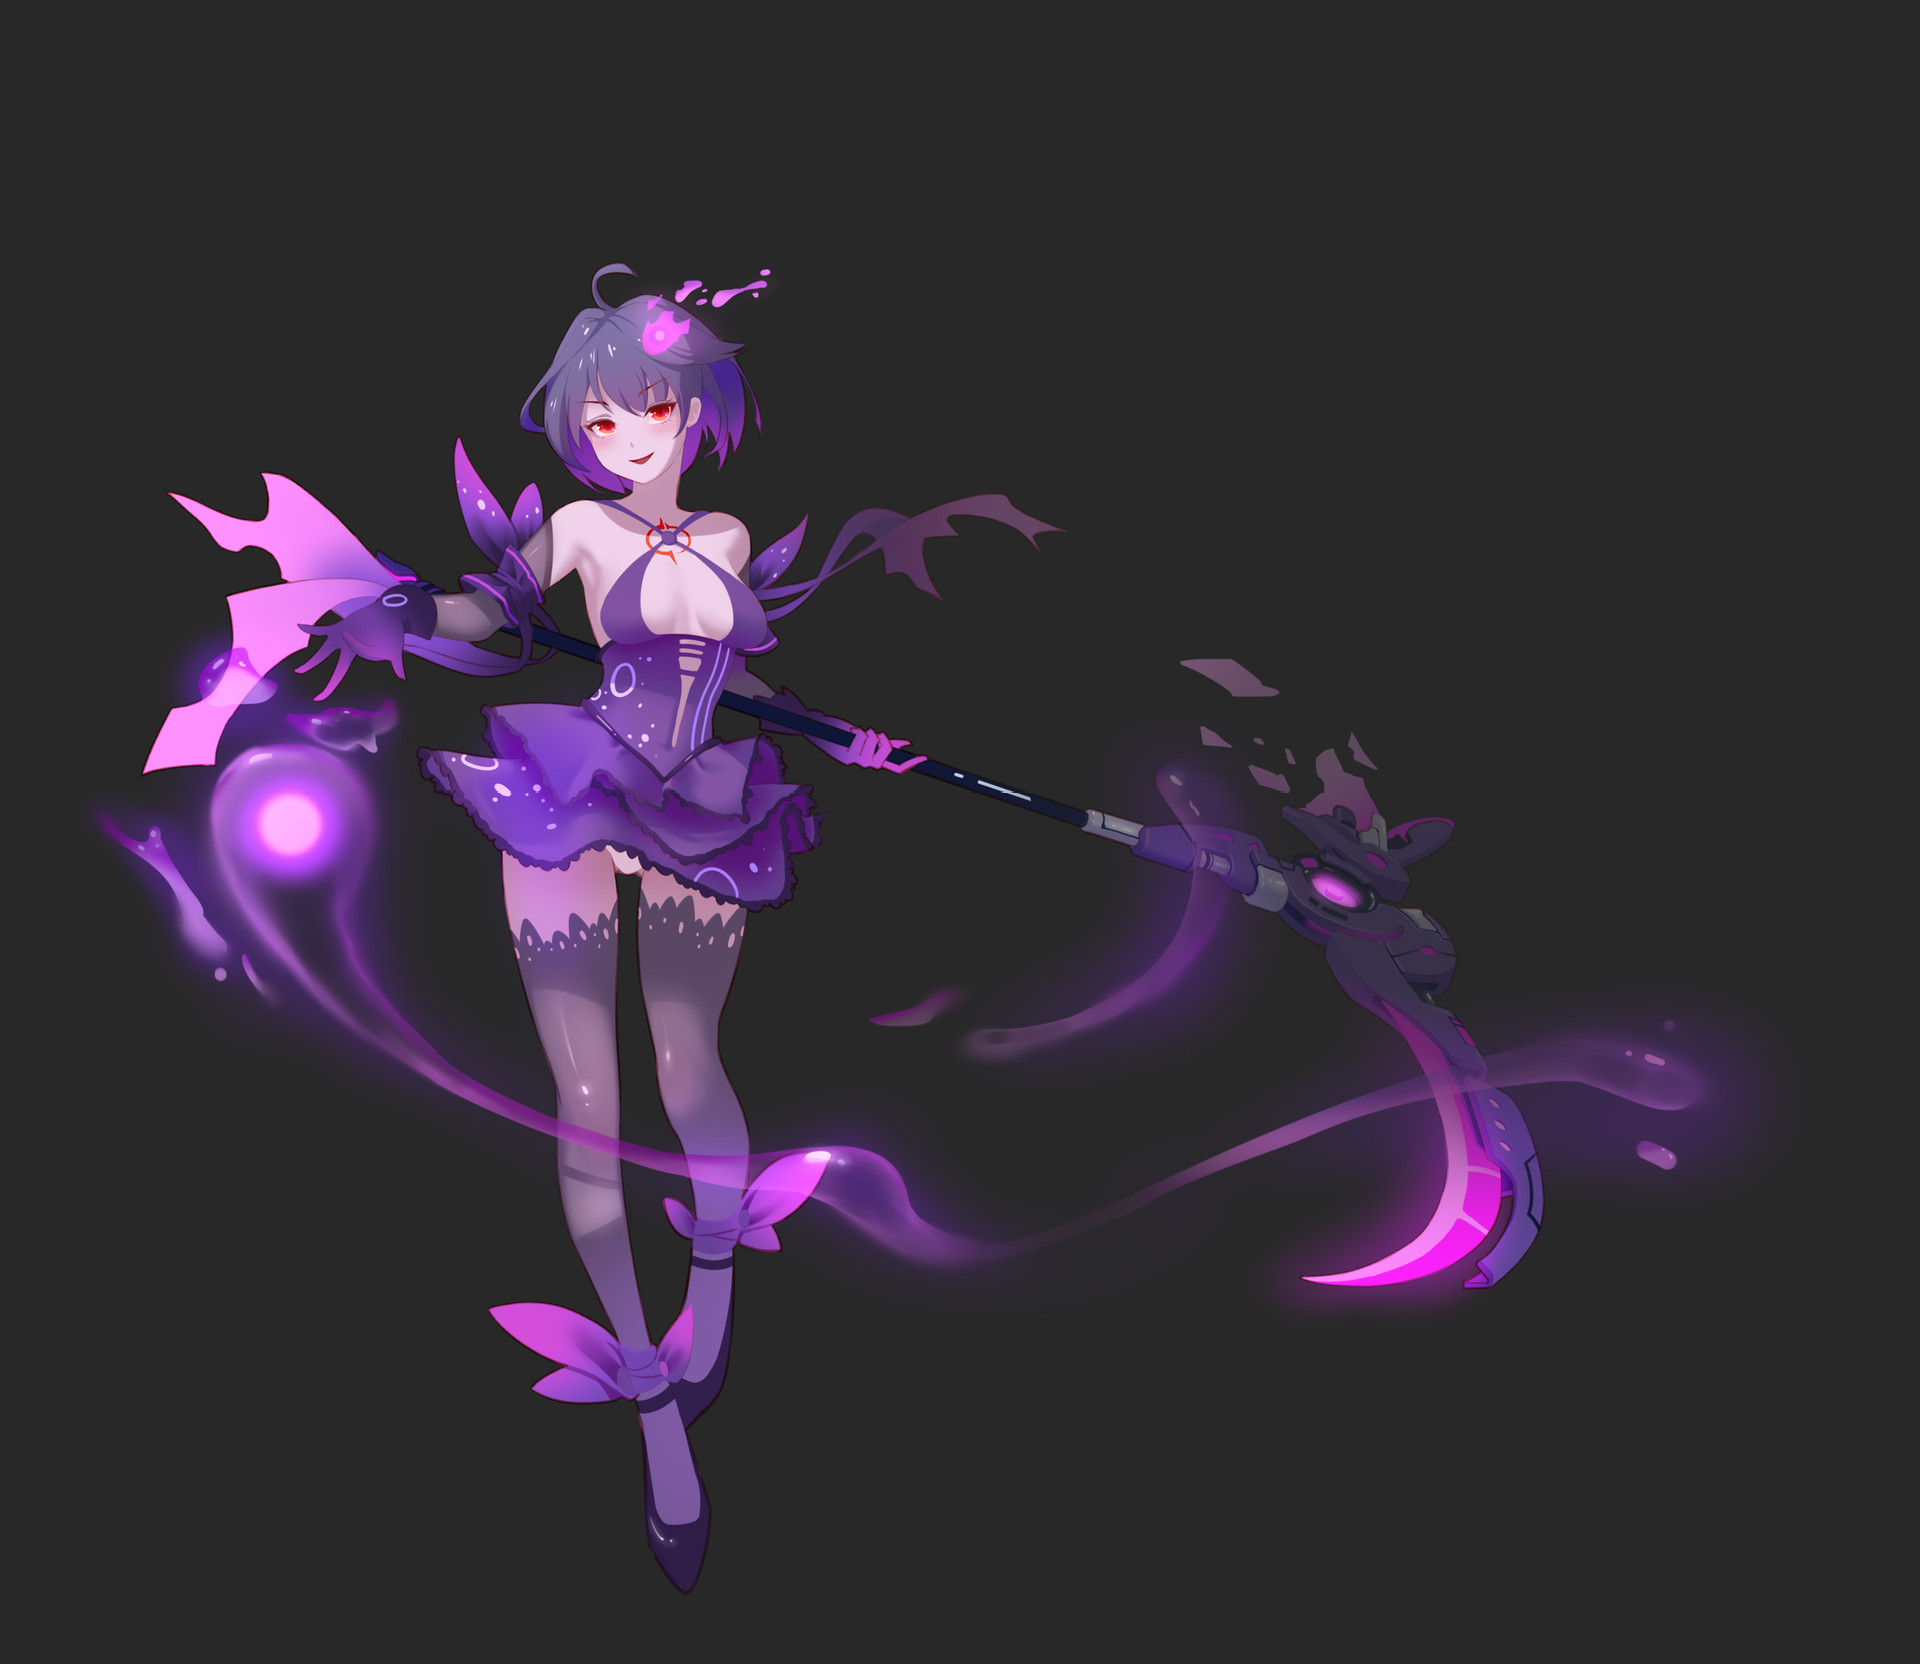 ArtStation - A fans design for Seele from HonKai Impact 3